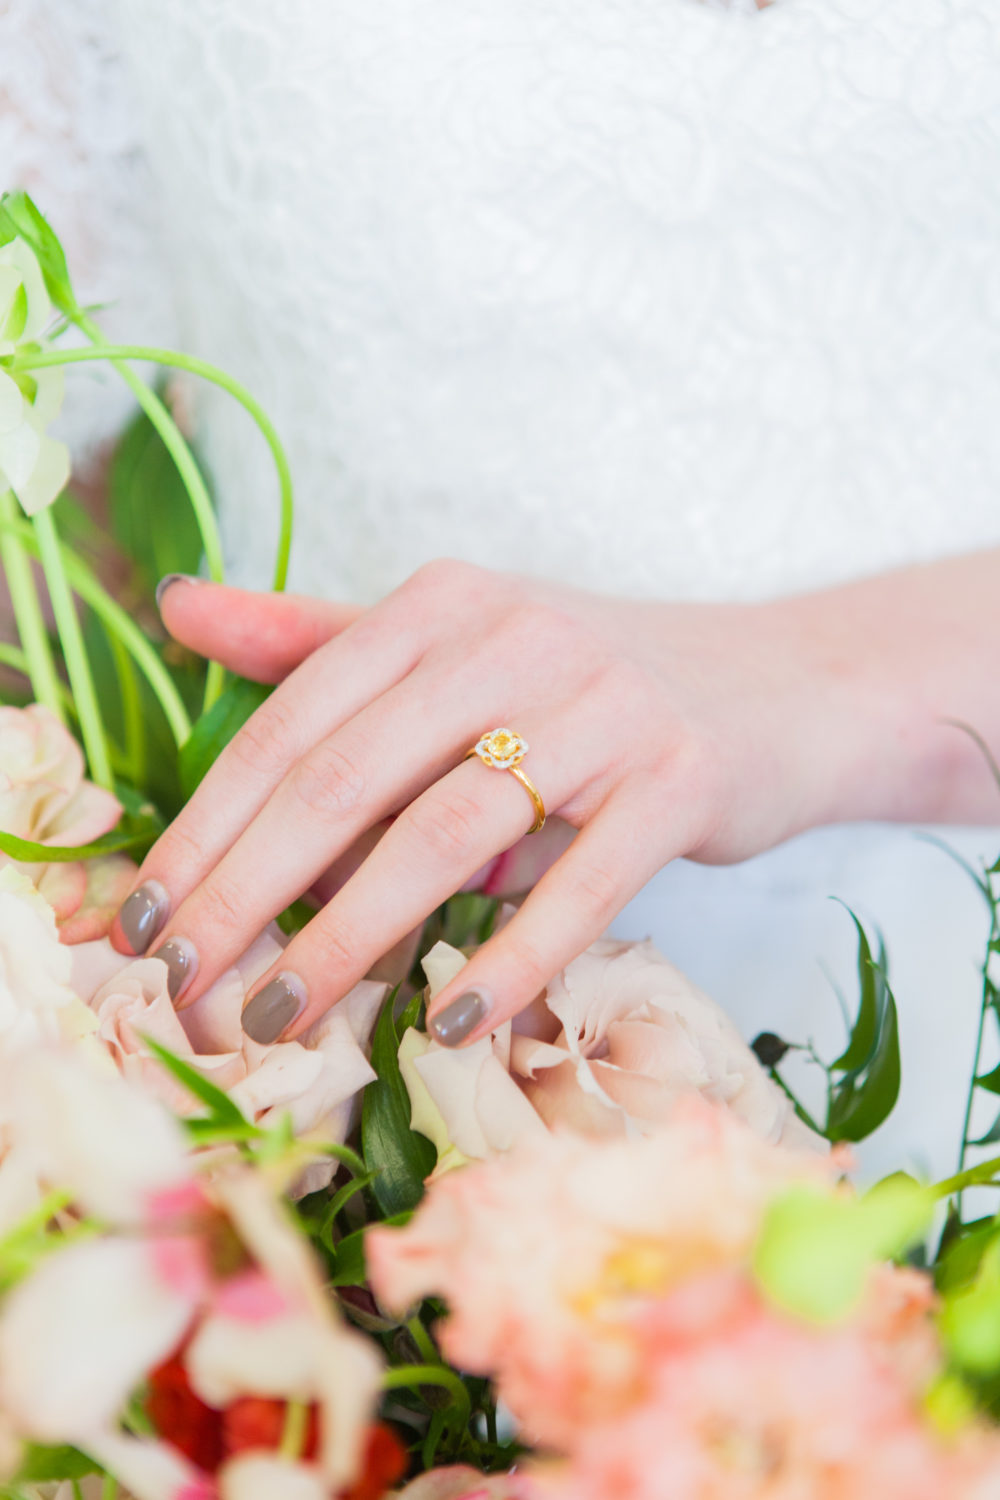 Bride's hands with floral engagement ring AmandaKarenPhotography